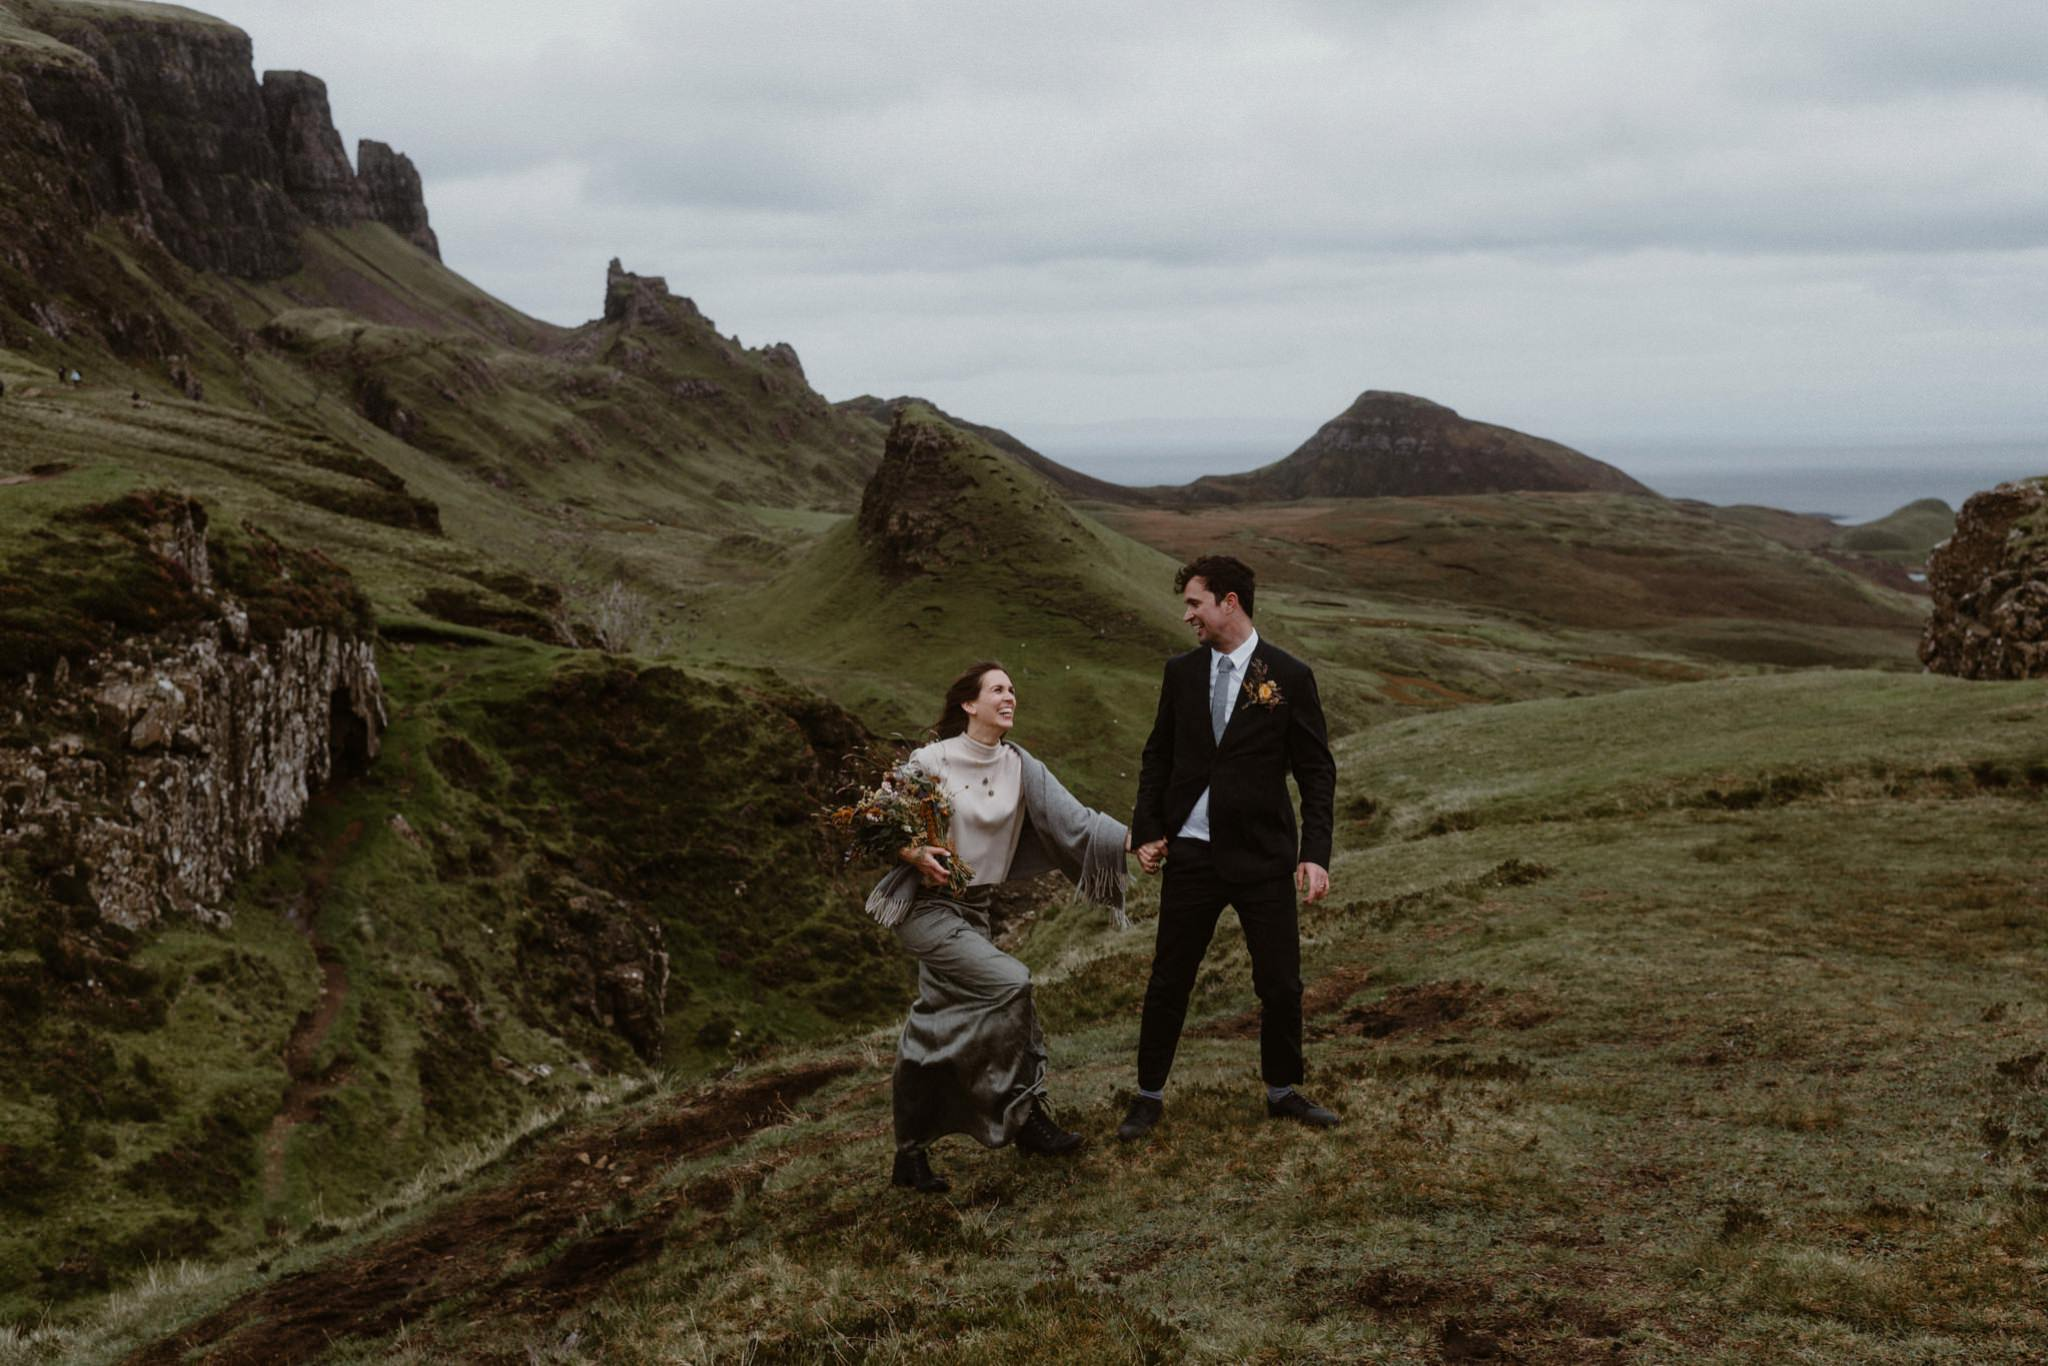 A husband and wife who eloped to Skye walk back from the Quiraing